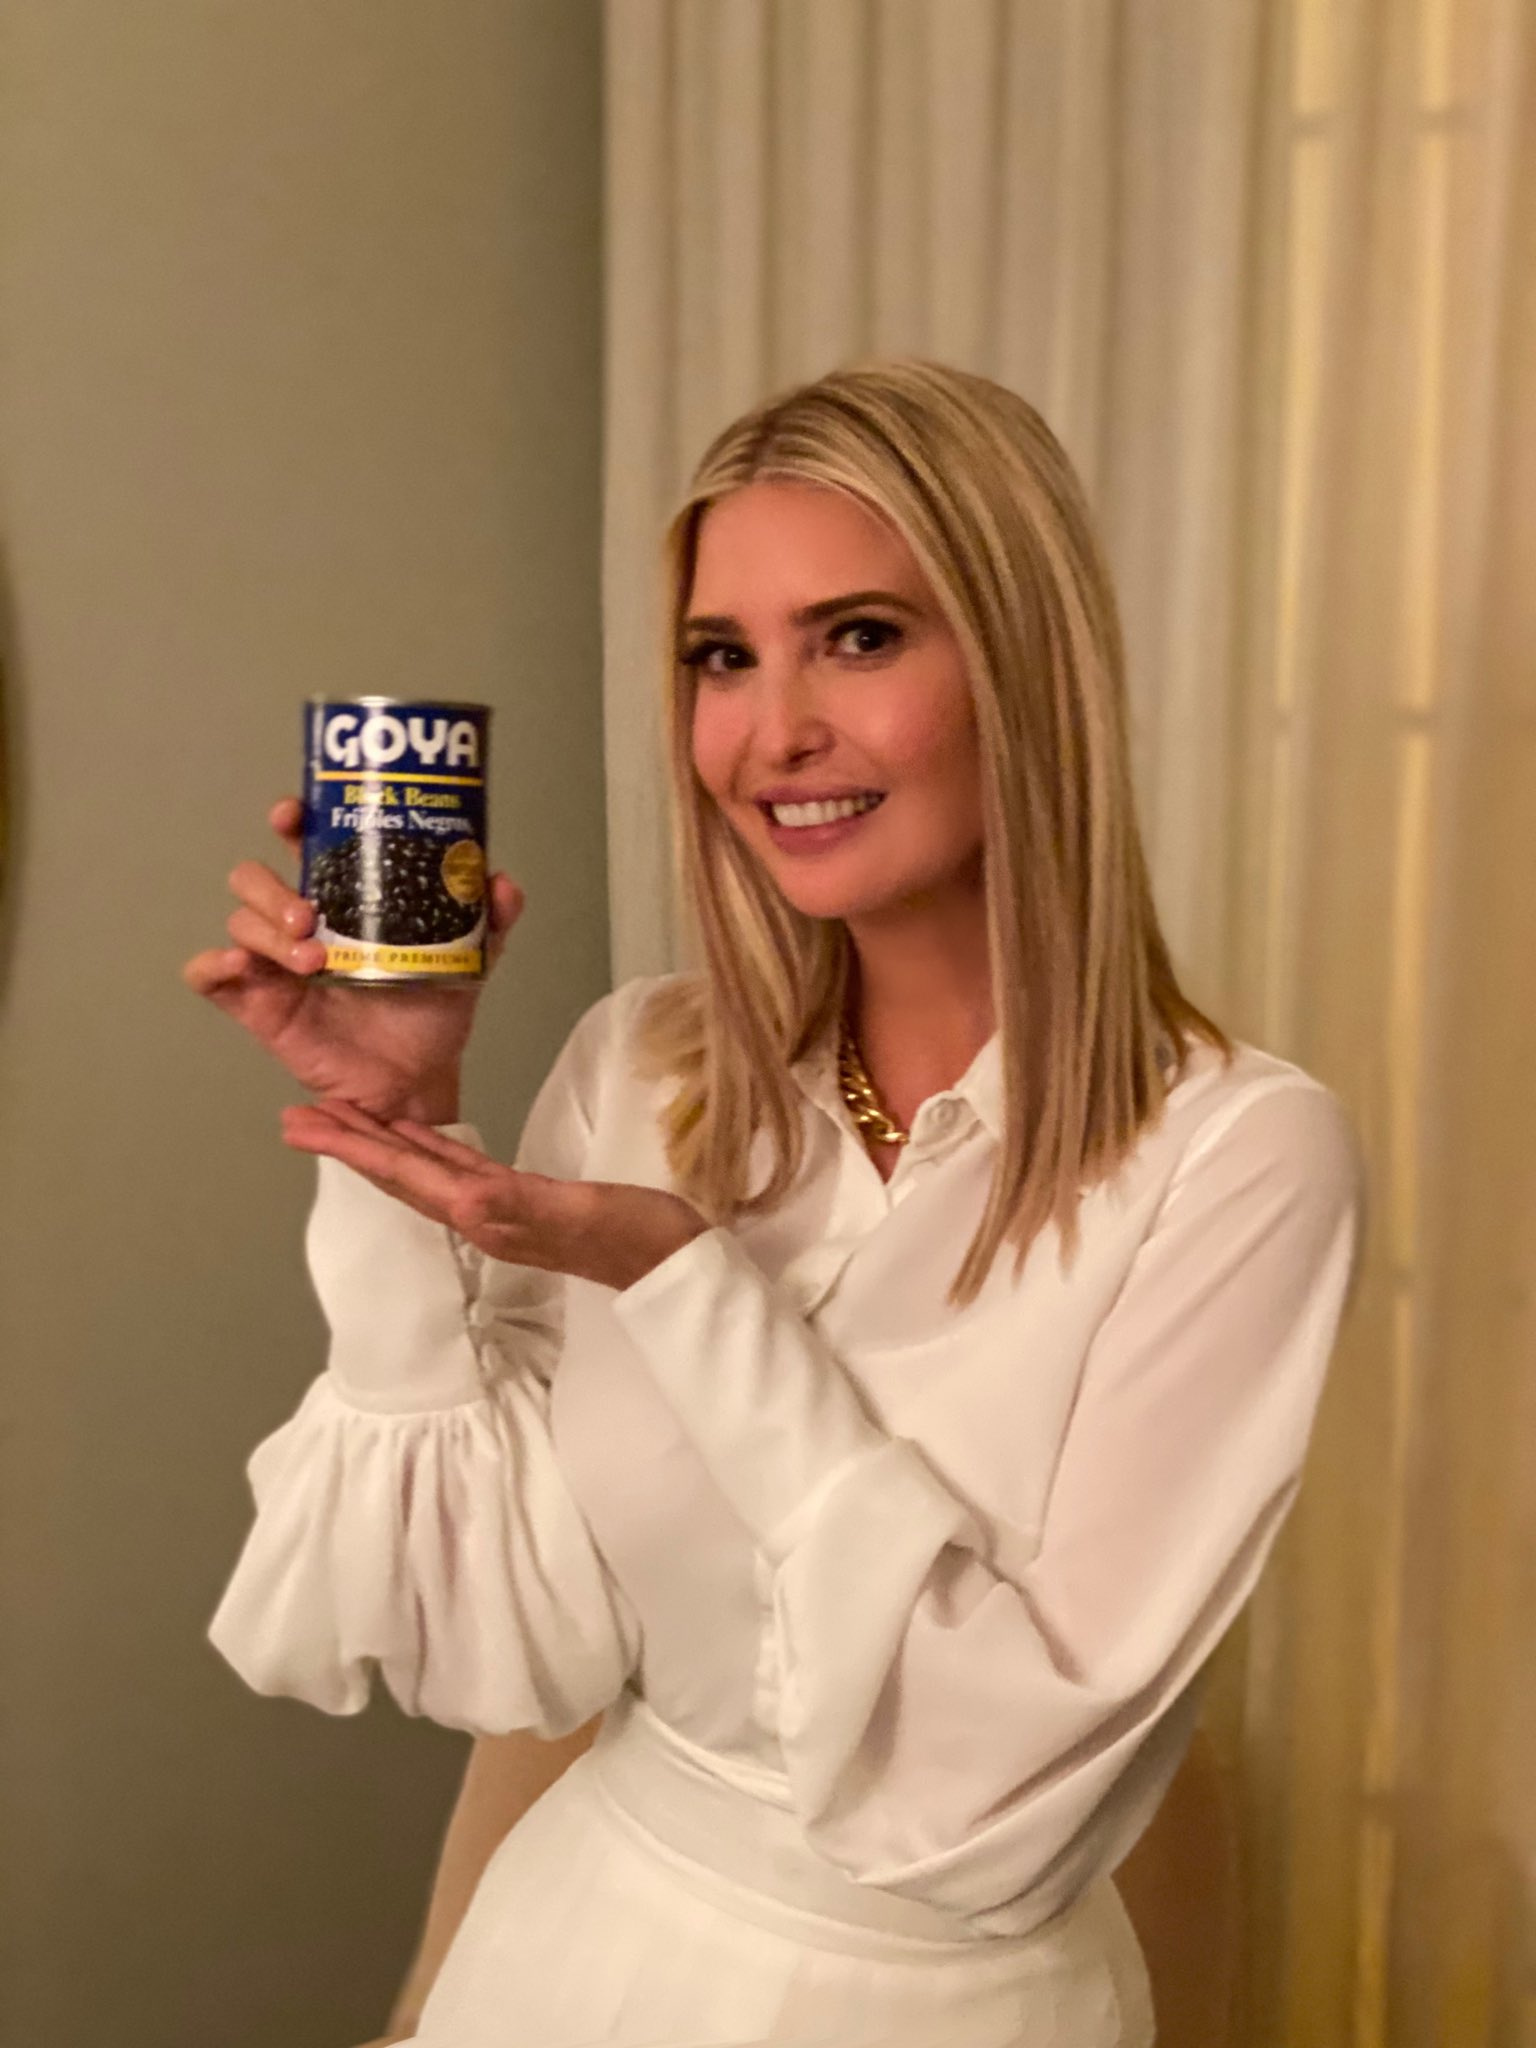 Our favourite things people photoshopped into Ivanka Trump's Goya beans picture - the poke